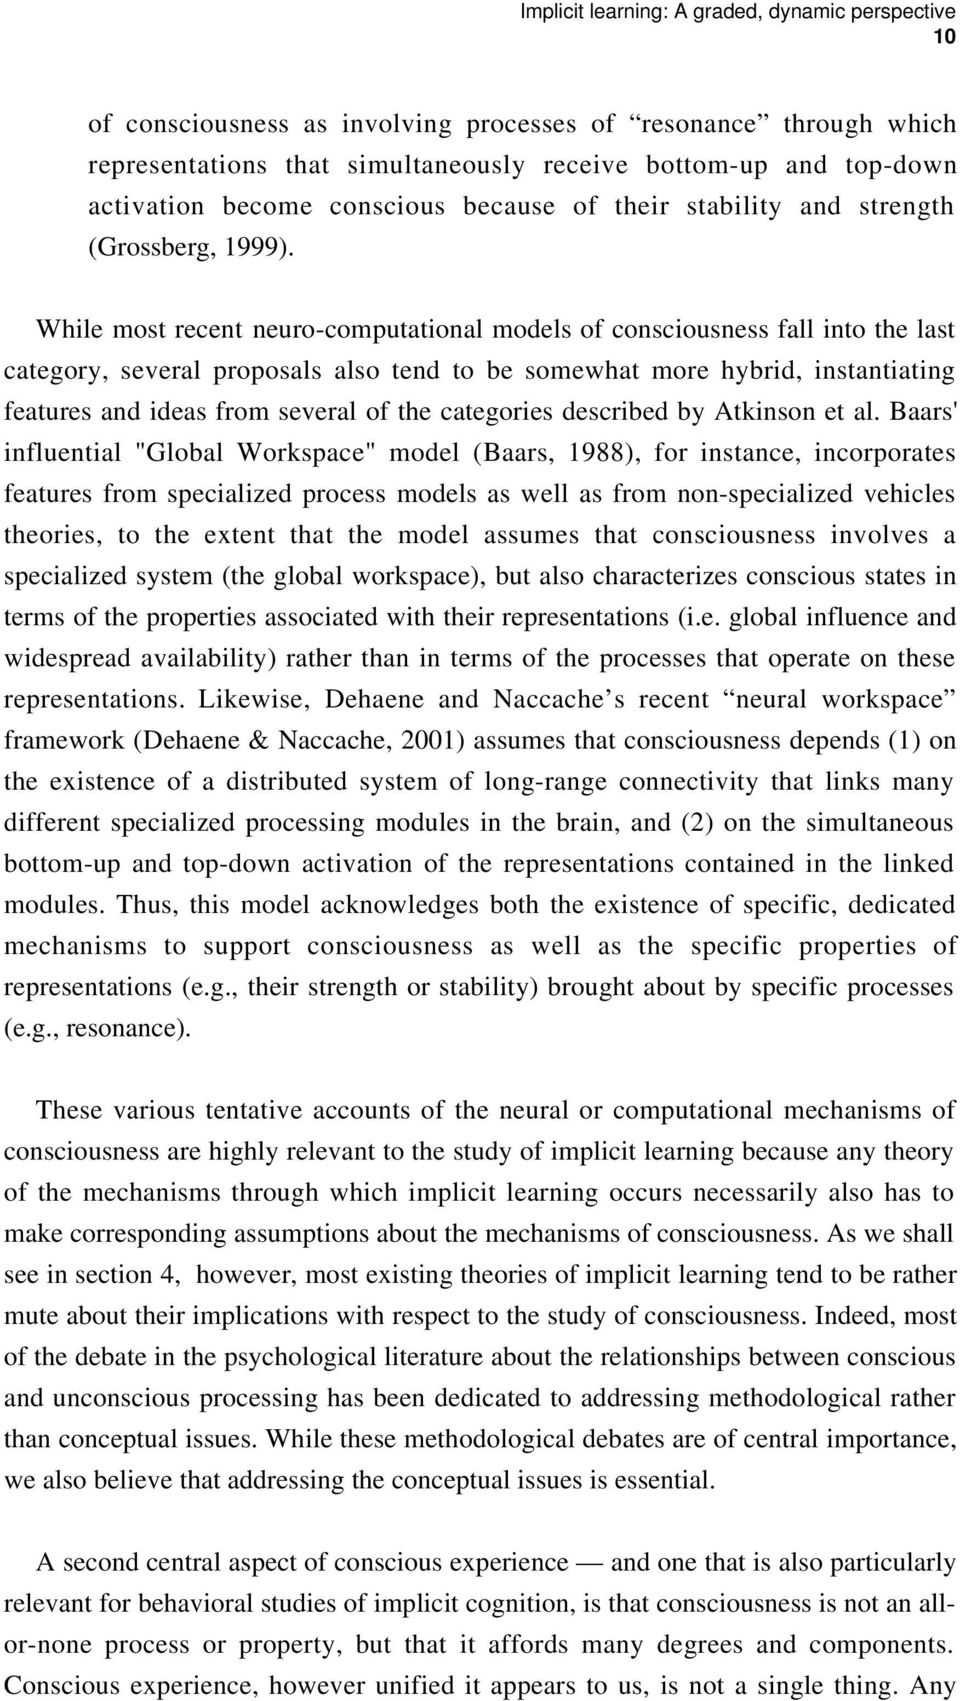 While most recent neuro-computational models of consciousness fall into the last category, several proposals also tend to be somewhat more hybrid, instantiating features and ideas from several of the